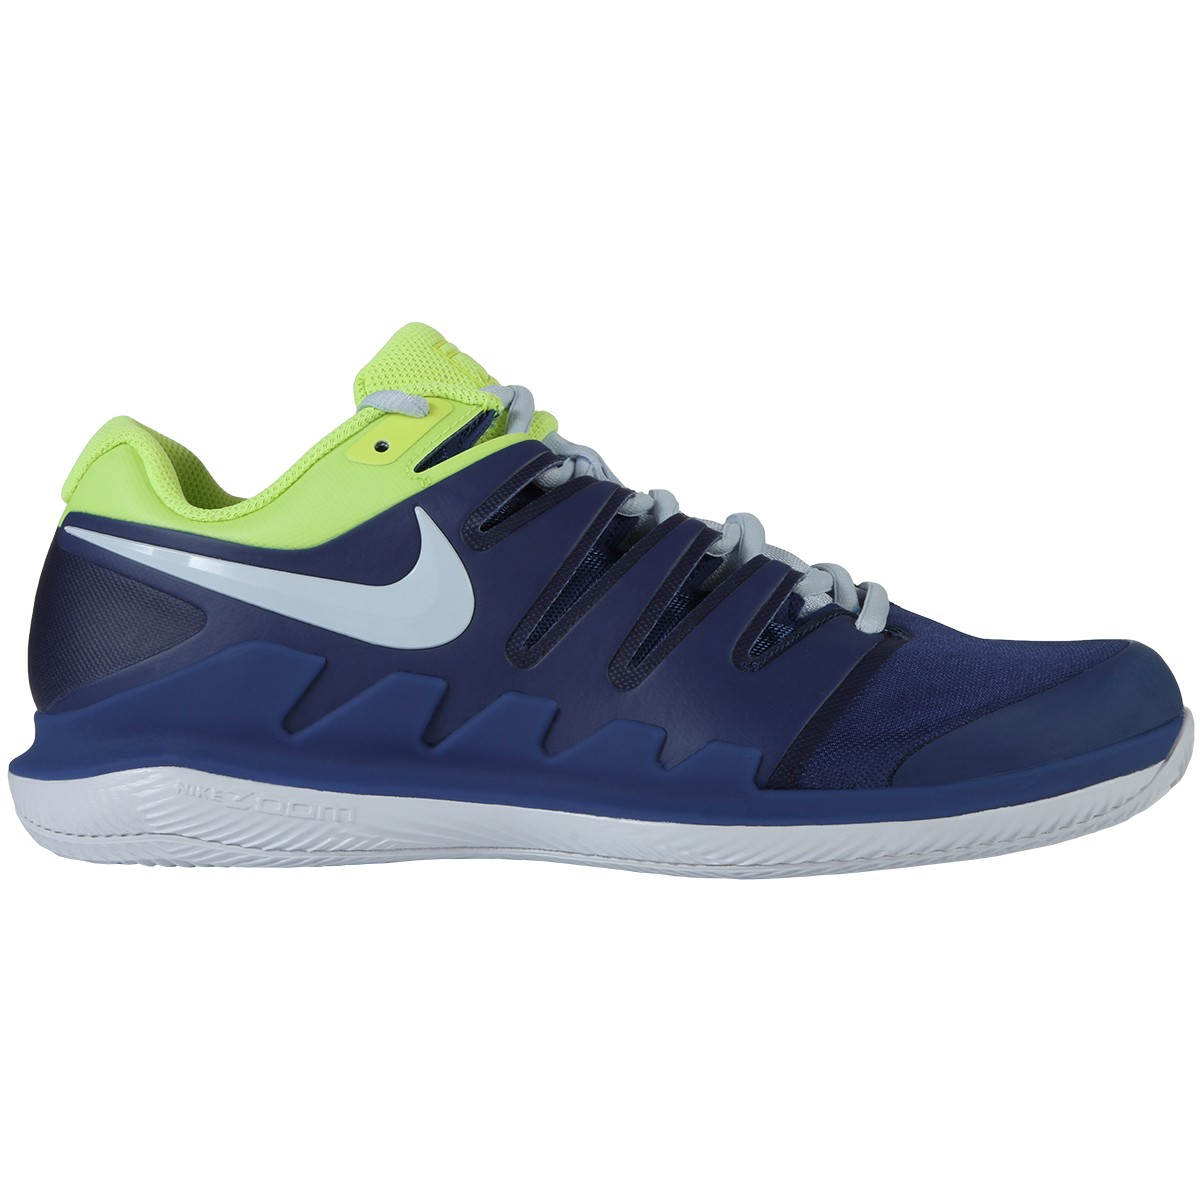 All4play tennis Nike Chaussures 10 Air Battue Terre Vapor Zoom Rd70Zq